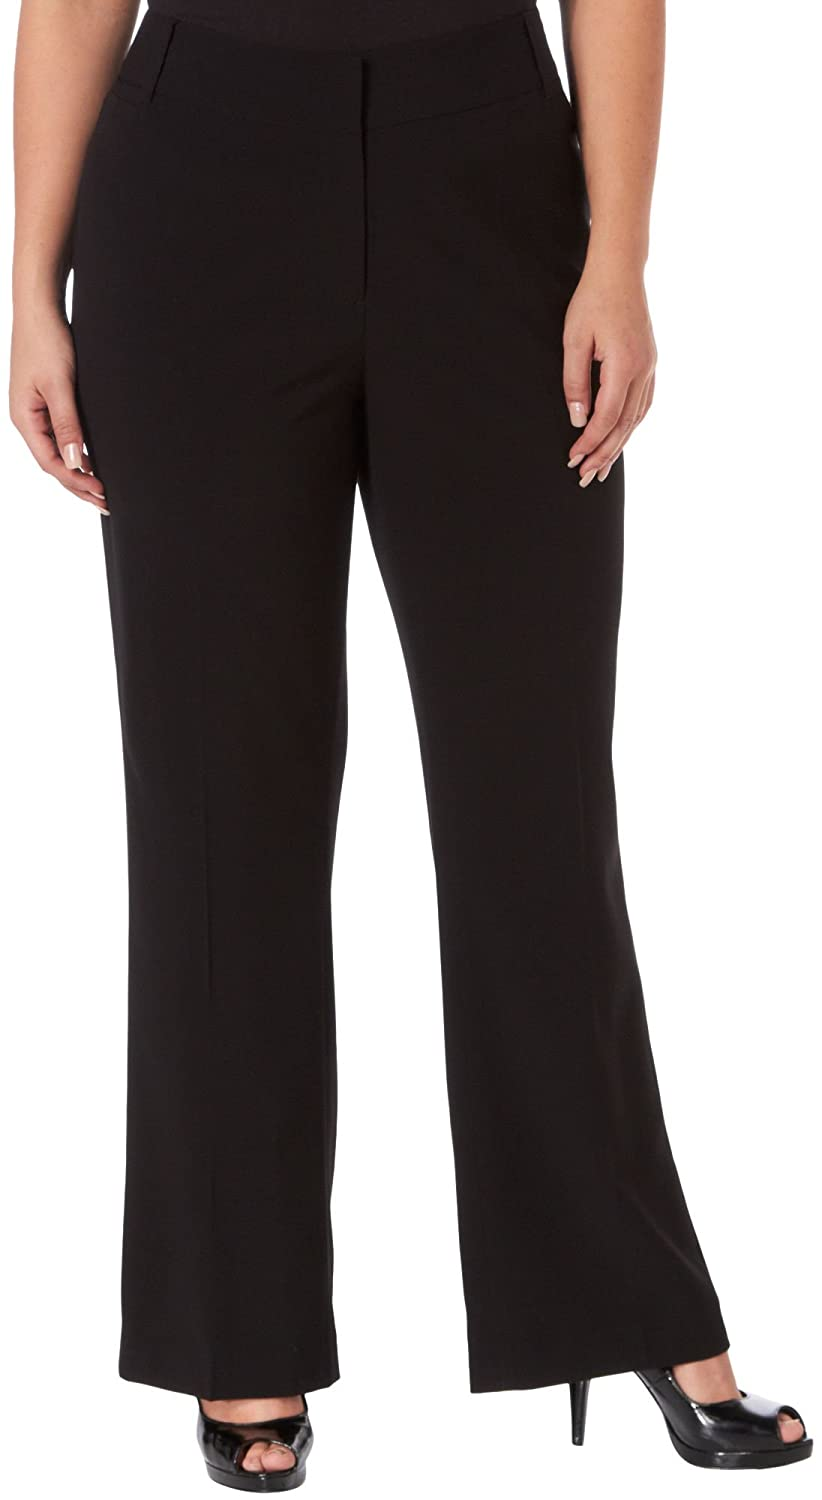 Nue Options Plus Signature Stretch Pants 20W Black 0018176437